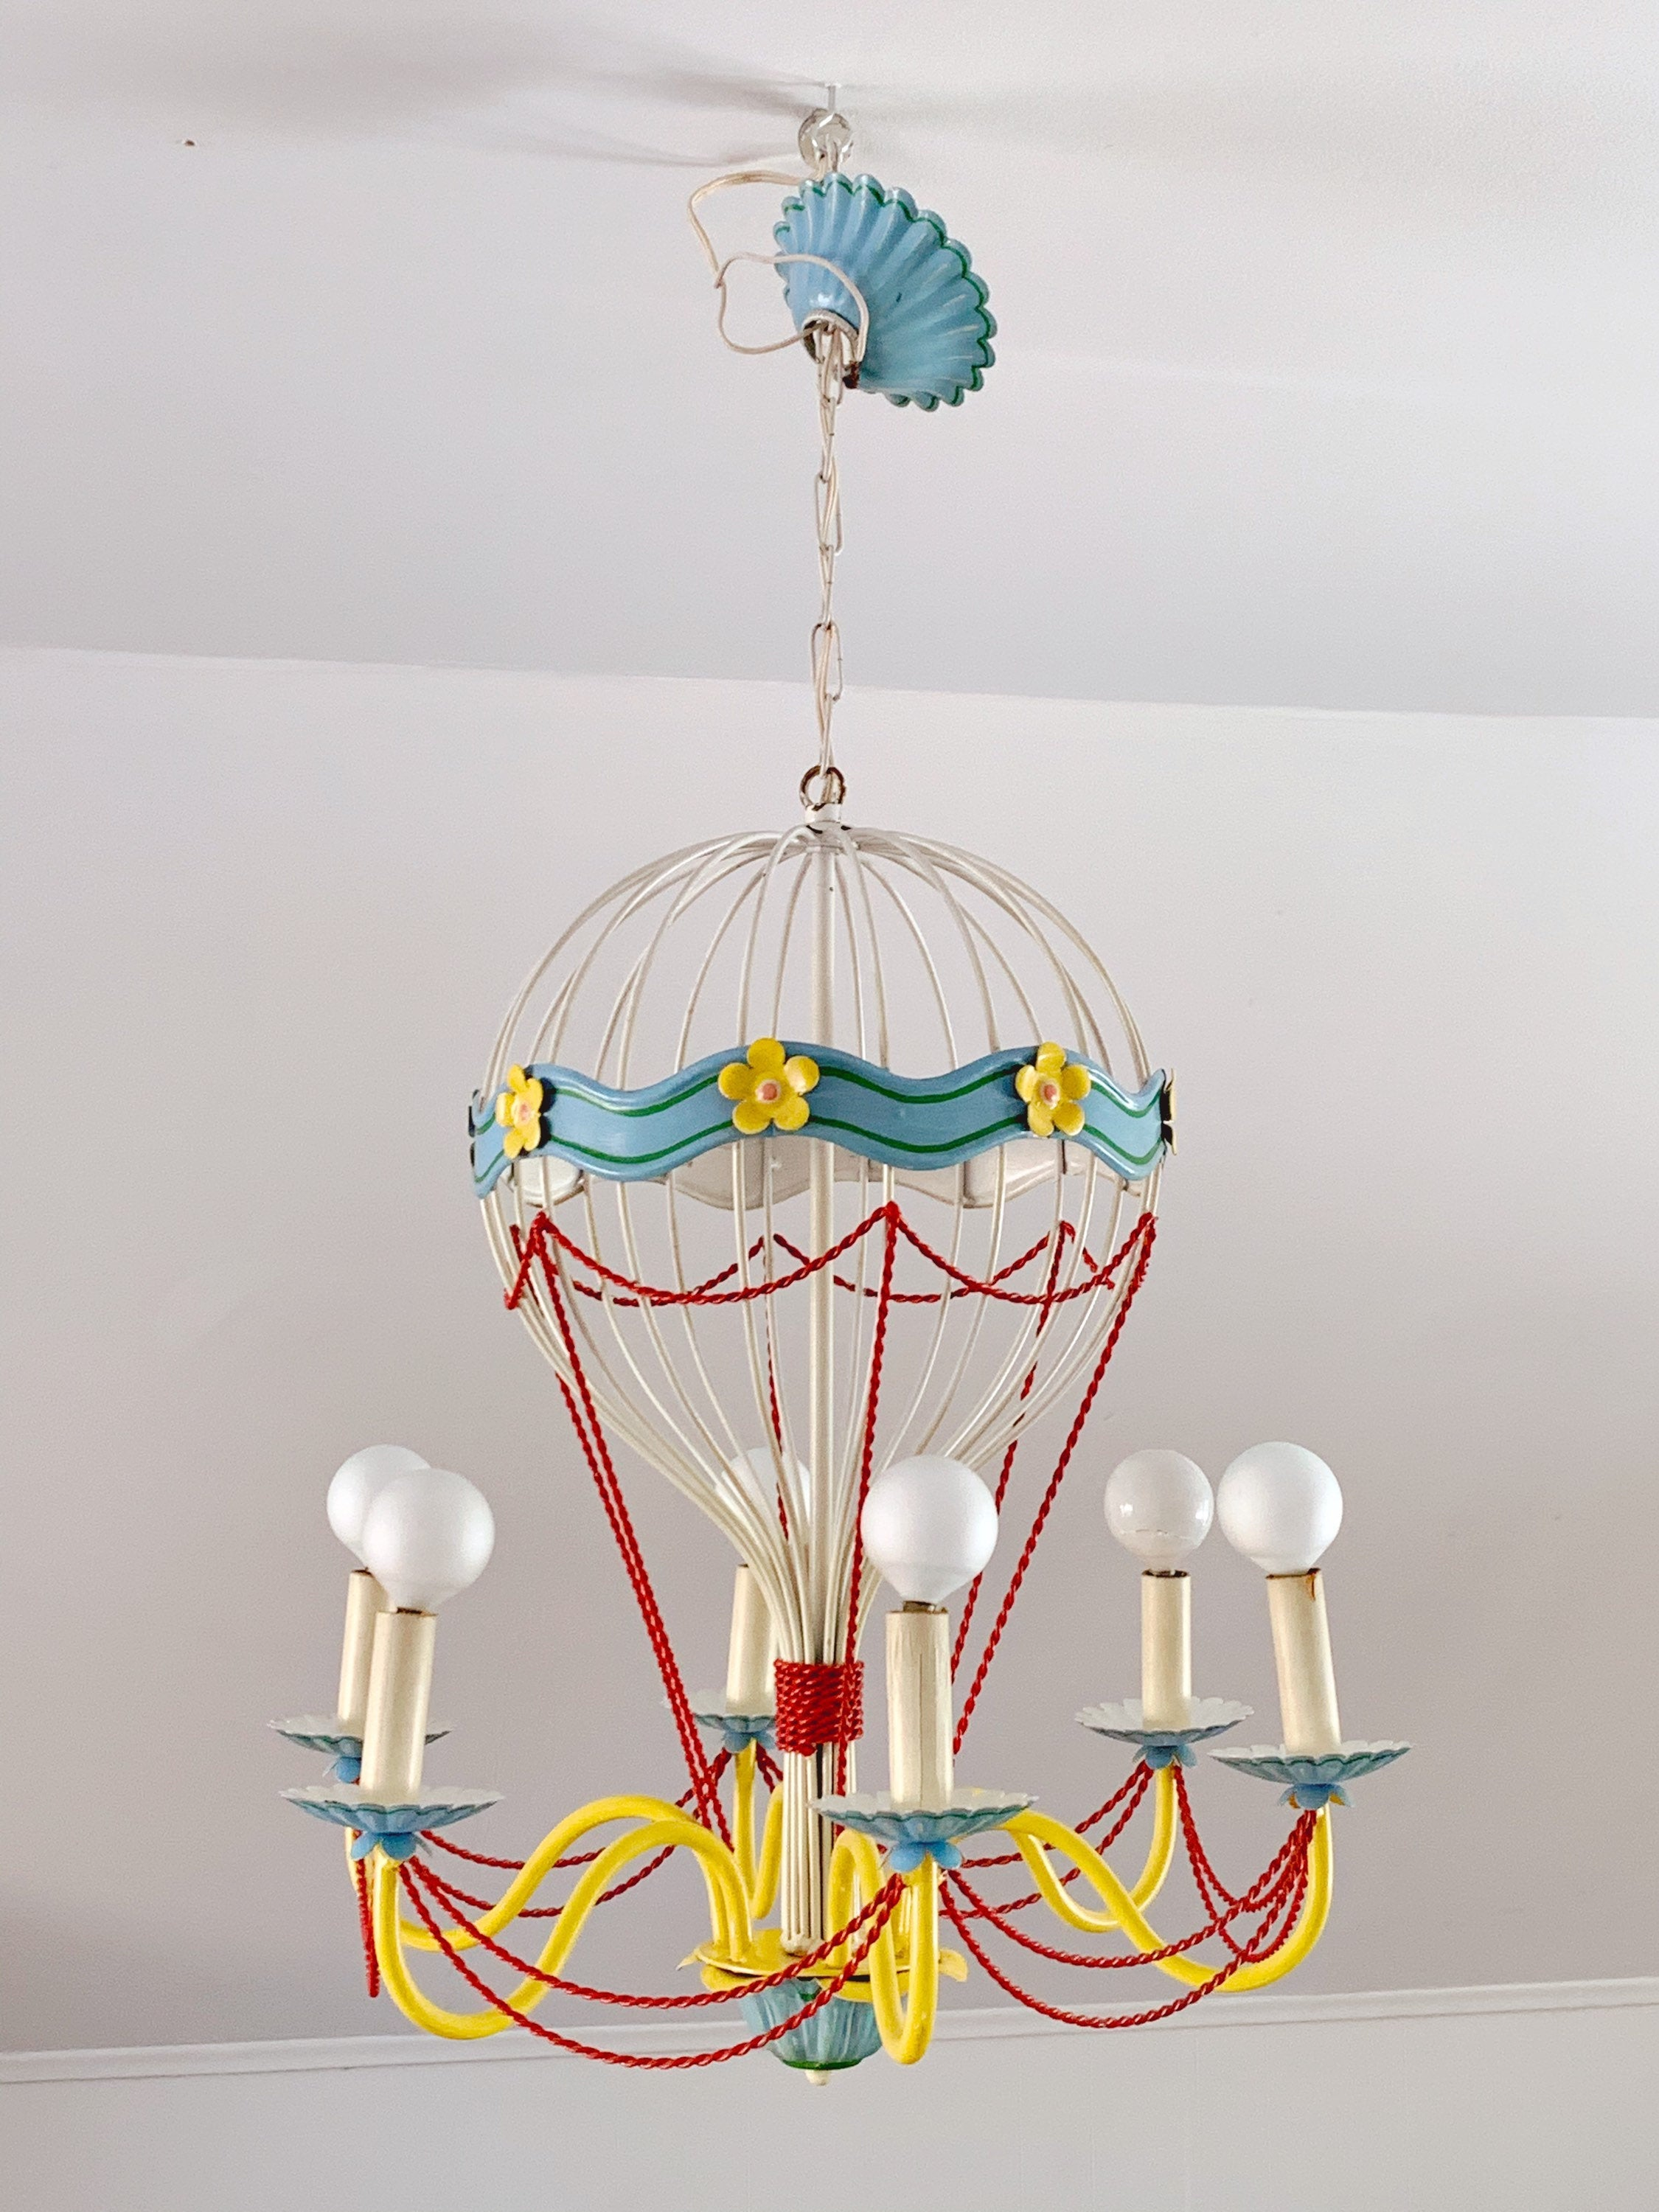 Circa 1940's Vintage French Tole Hot Air Balloon Chandelier | Whimsical Mid-Century 6 Arm Ceiling Light | Nursery and Kids Room Decor